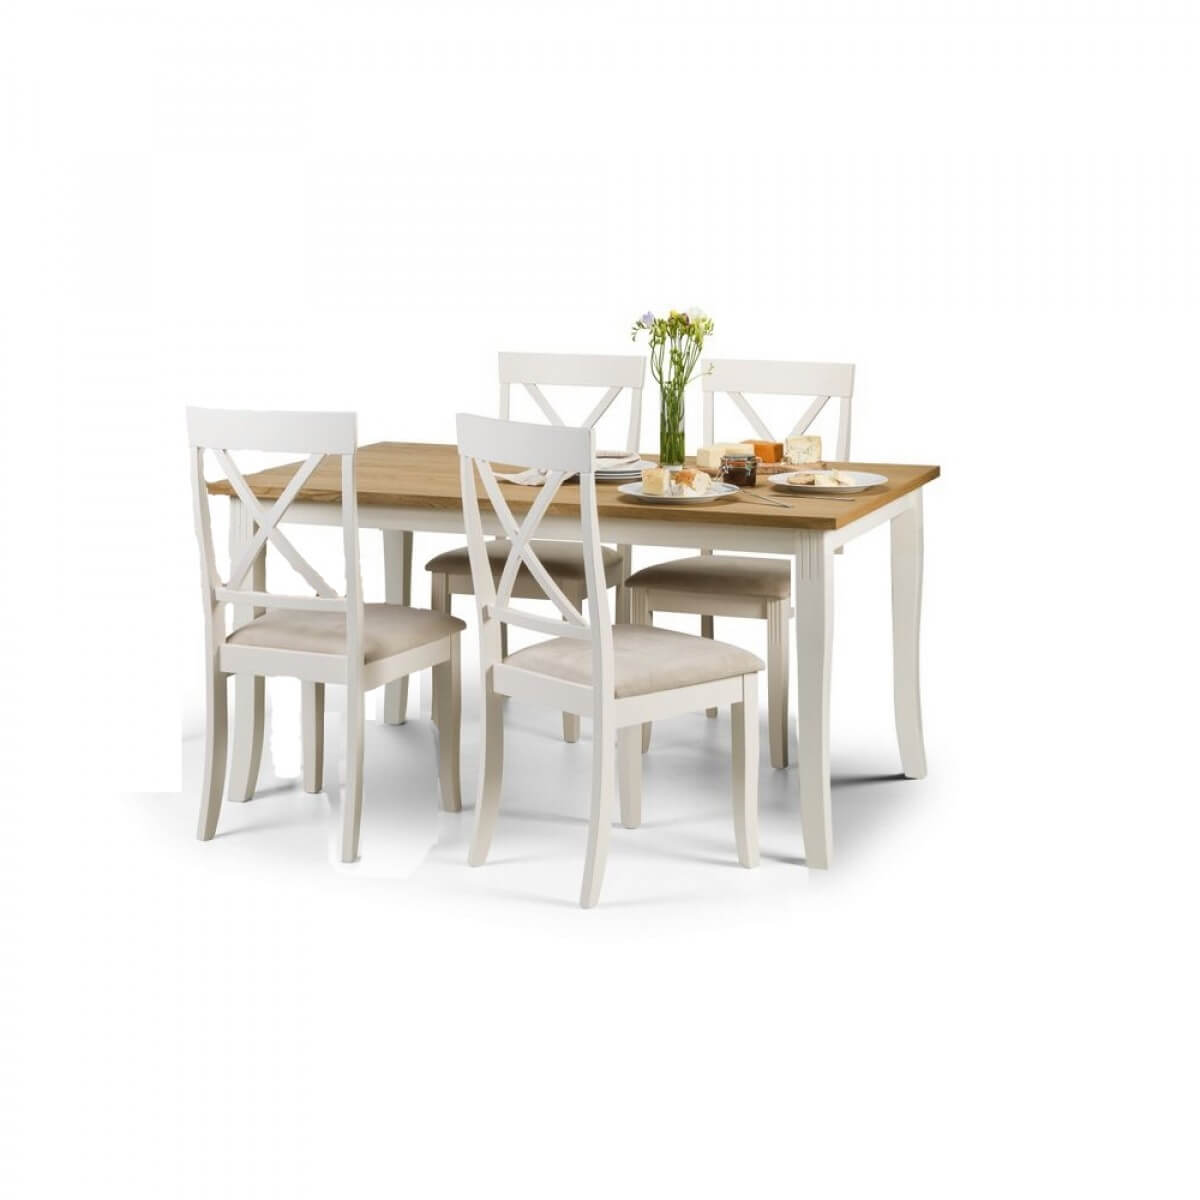 https://www.firstfurniture.co.uk/pub/media/catalog/product/j/u/julian_bowen_davenport_dining_table_and_chairs_dav101_dav102_2-1200x1200_1.jpg